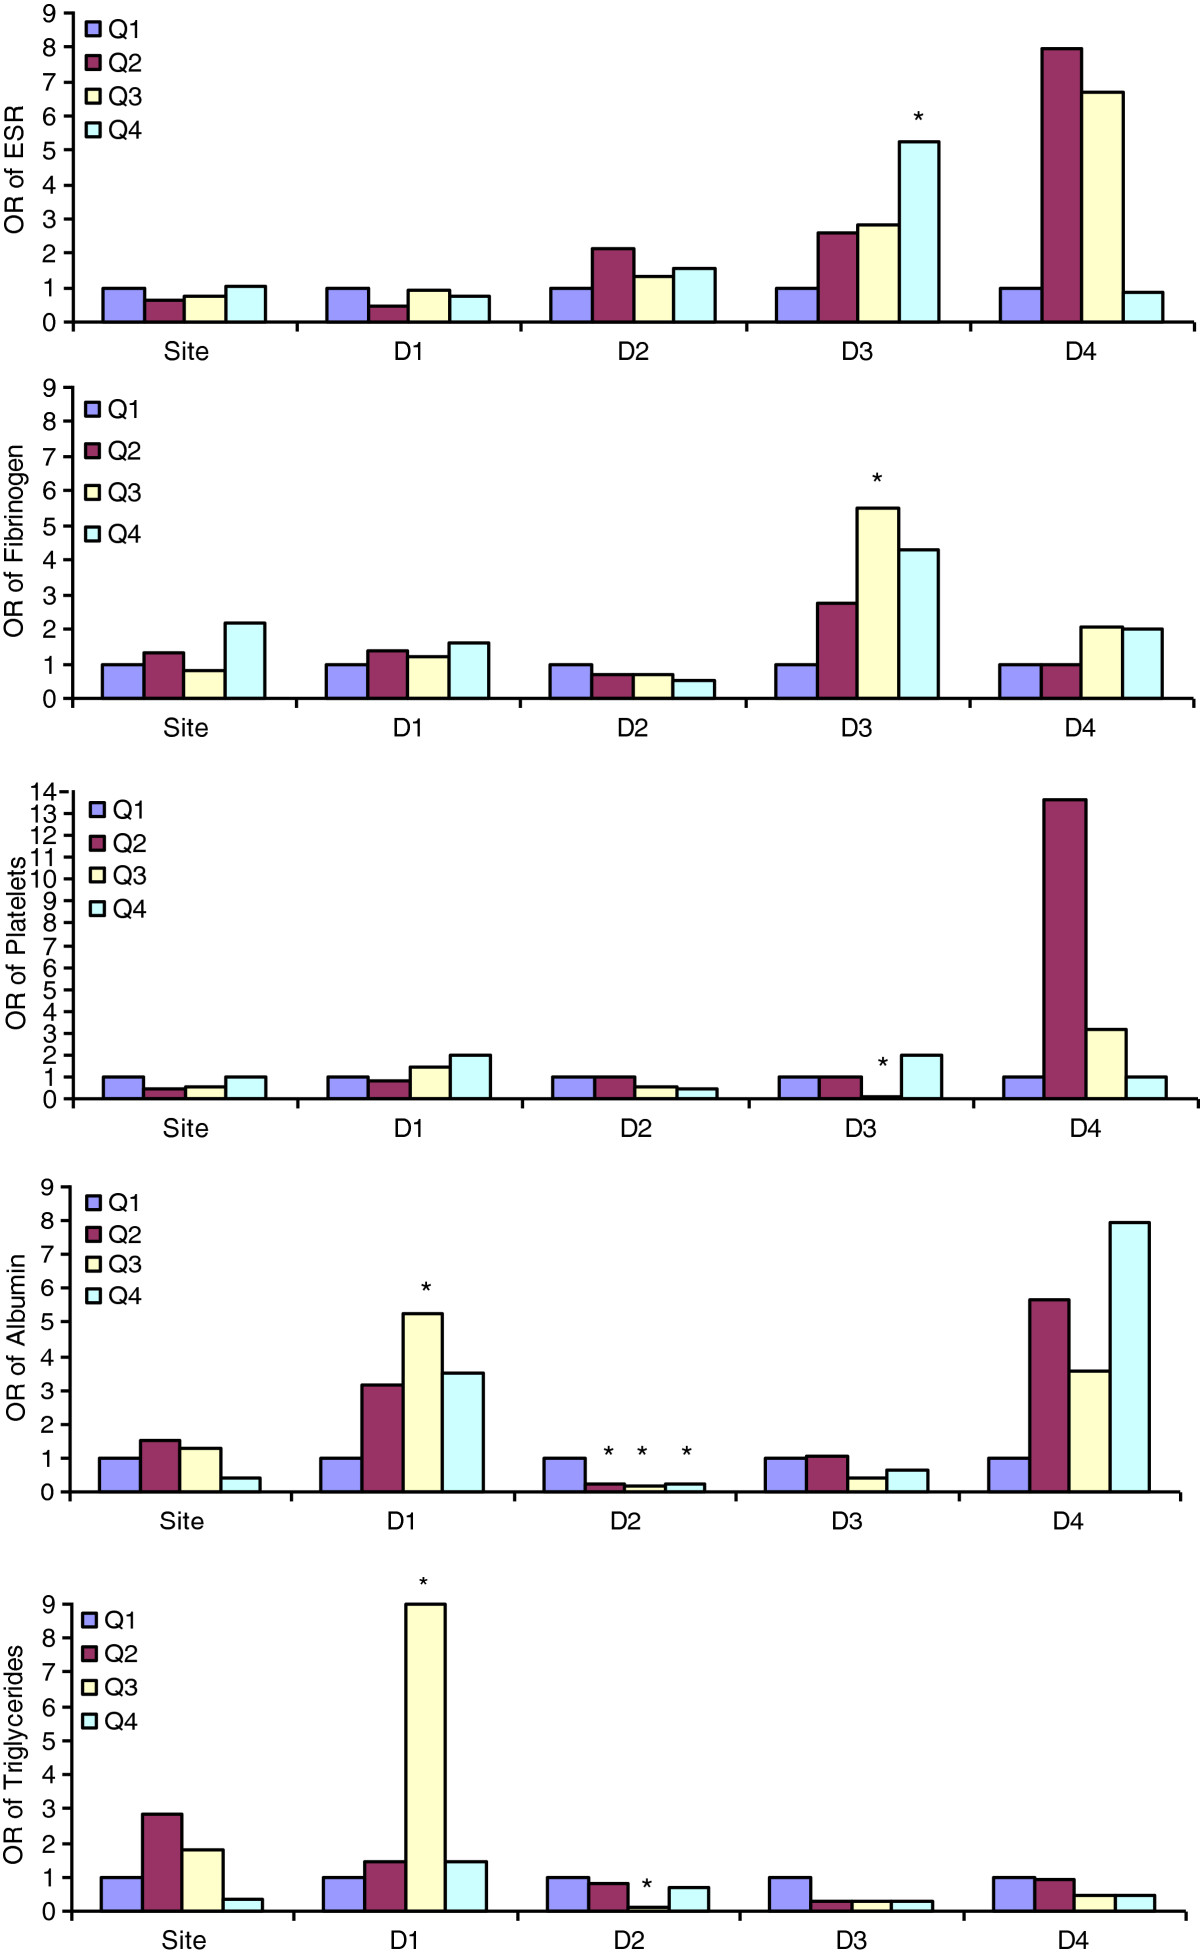 http://static-content.springer.com/image/art%3A10.1186%2F1742-4933-9-22/MediaObjects/12979_2012_Article_119_Fig1_HTML.jpg